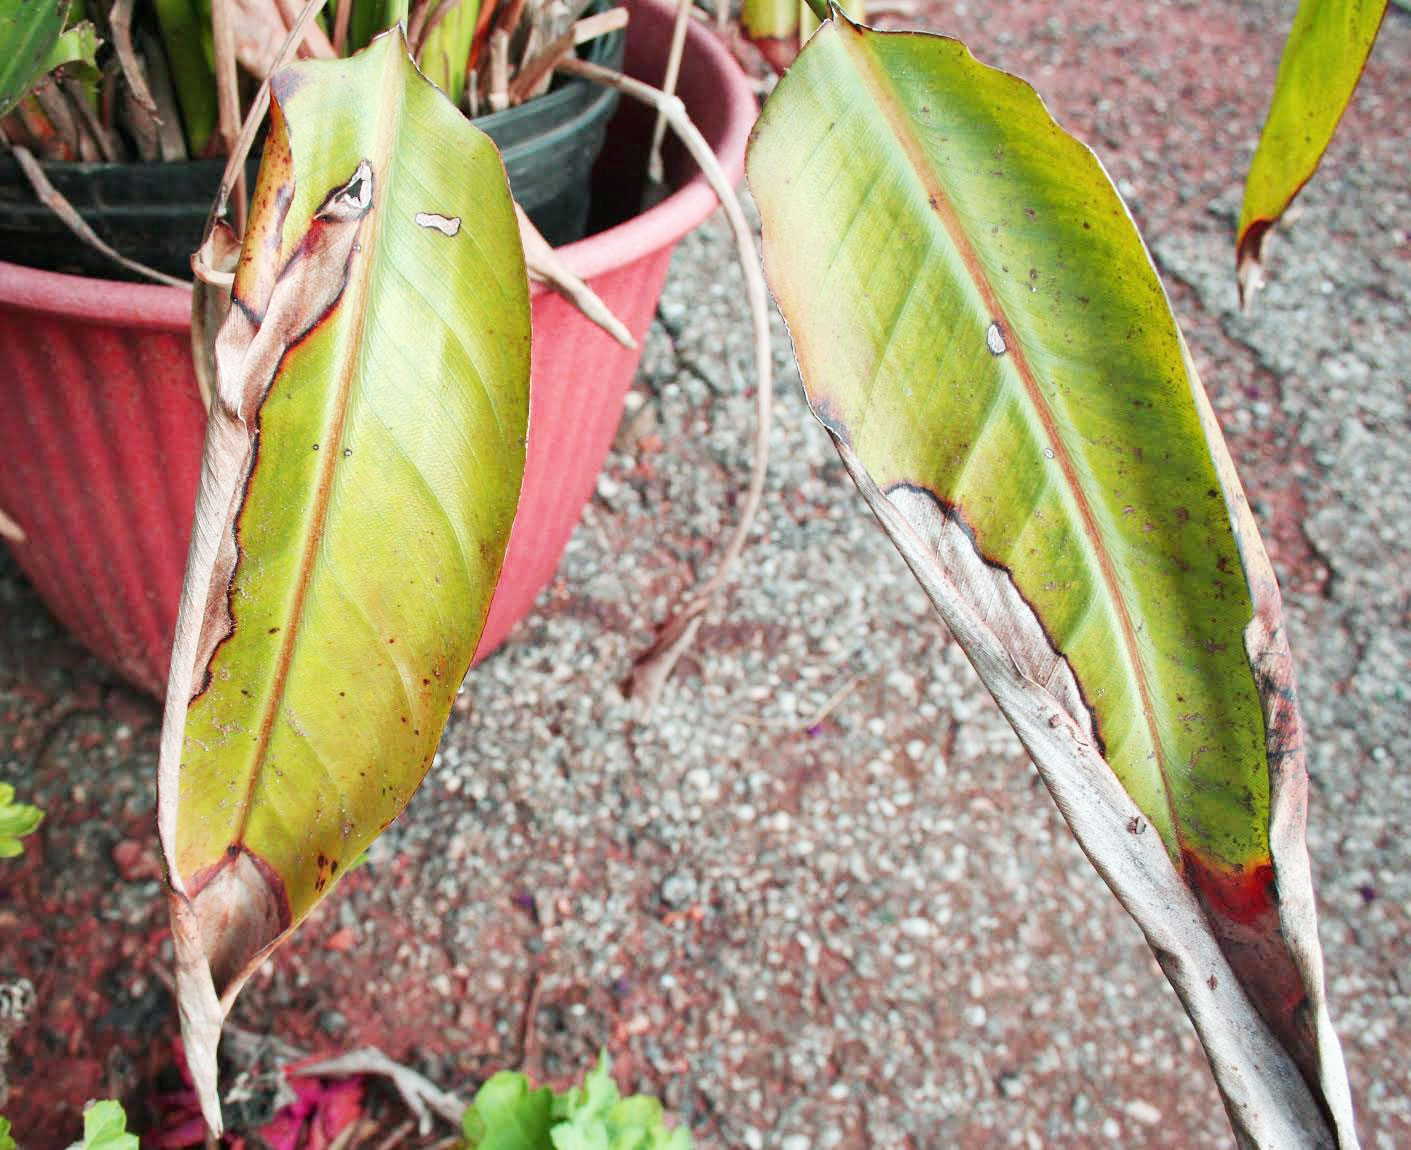 Bird Of Paradise Leaves Turning Yellow Caring For A Bird Of Paradise With Yellow Leaves Tropical golden pothos, easy care, tolerates low light and purifies the air. bird of paradise leaves turning yellow